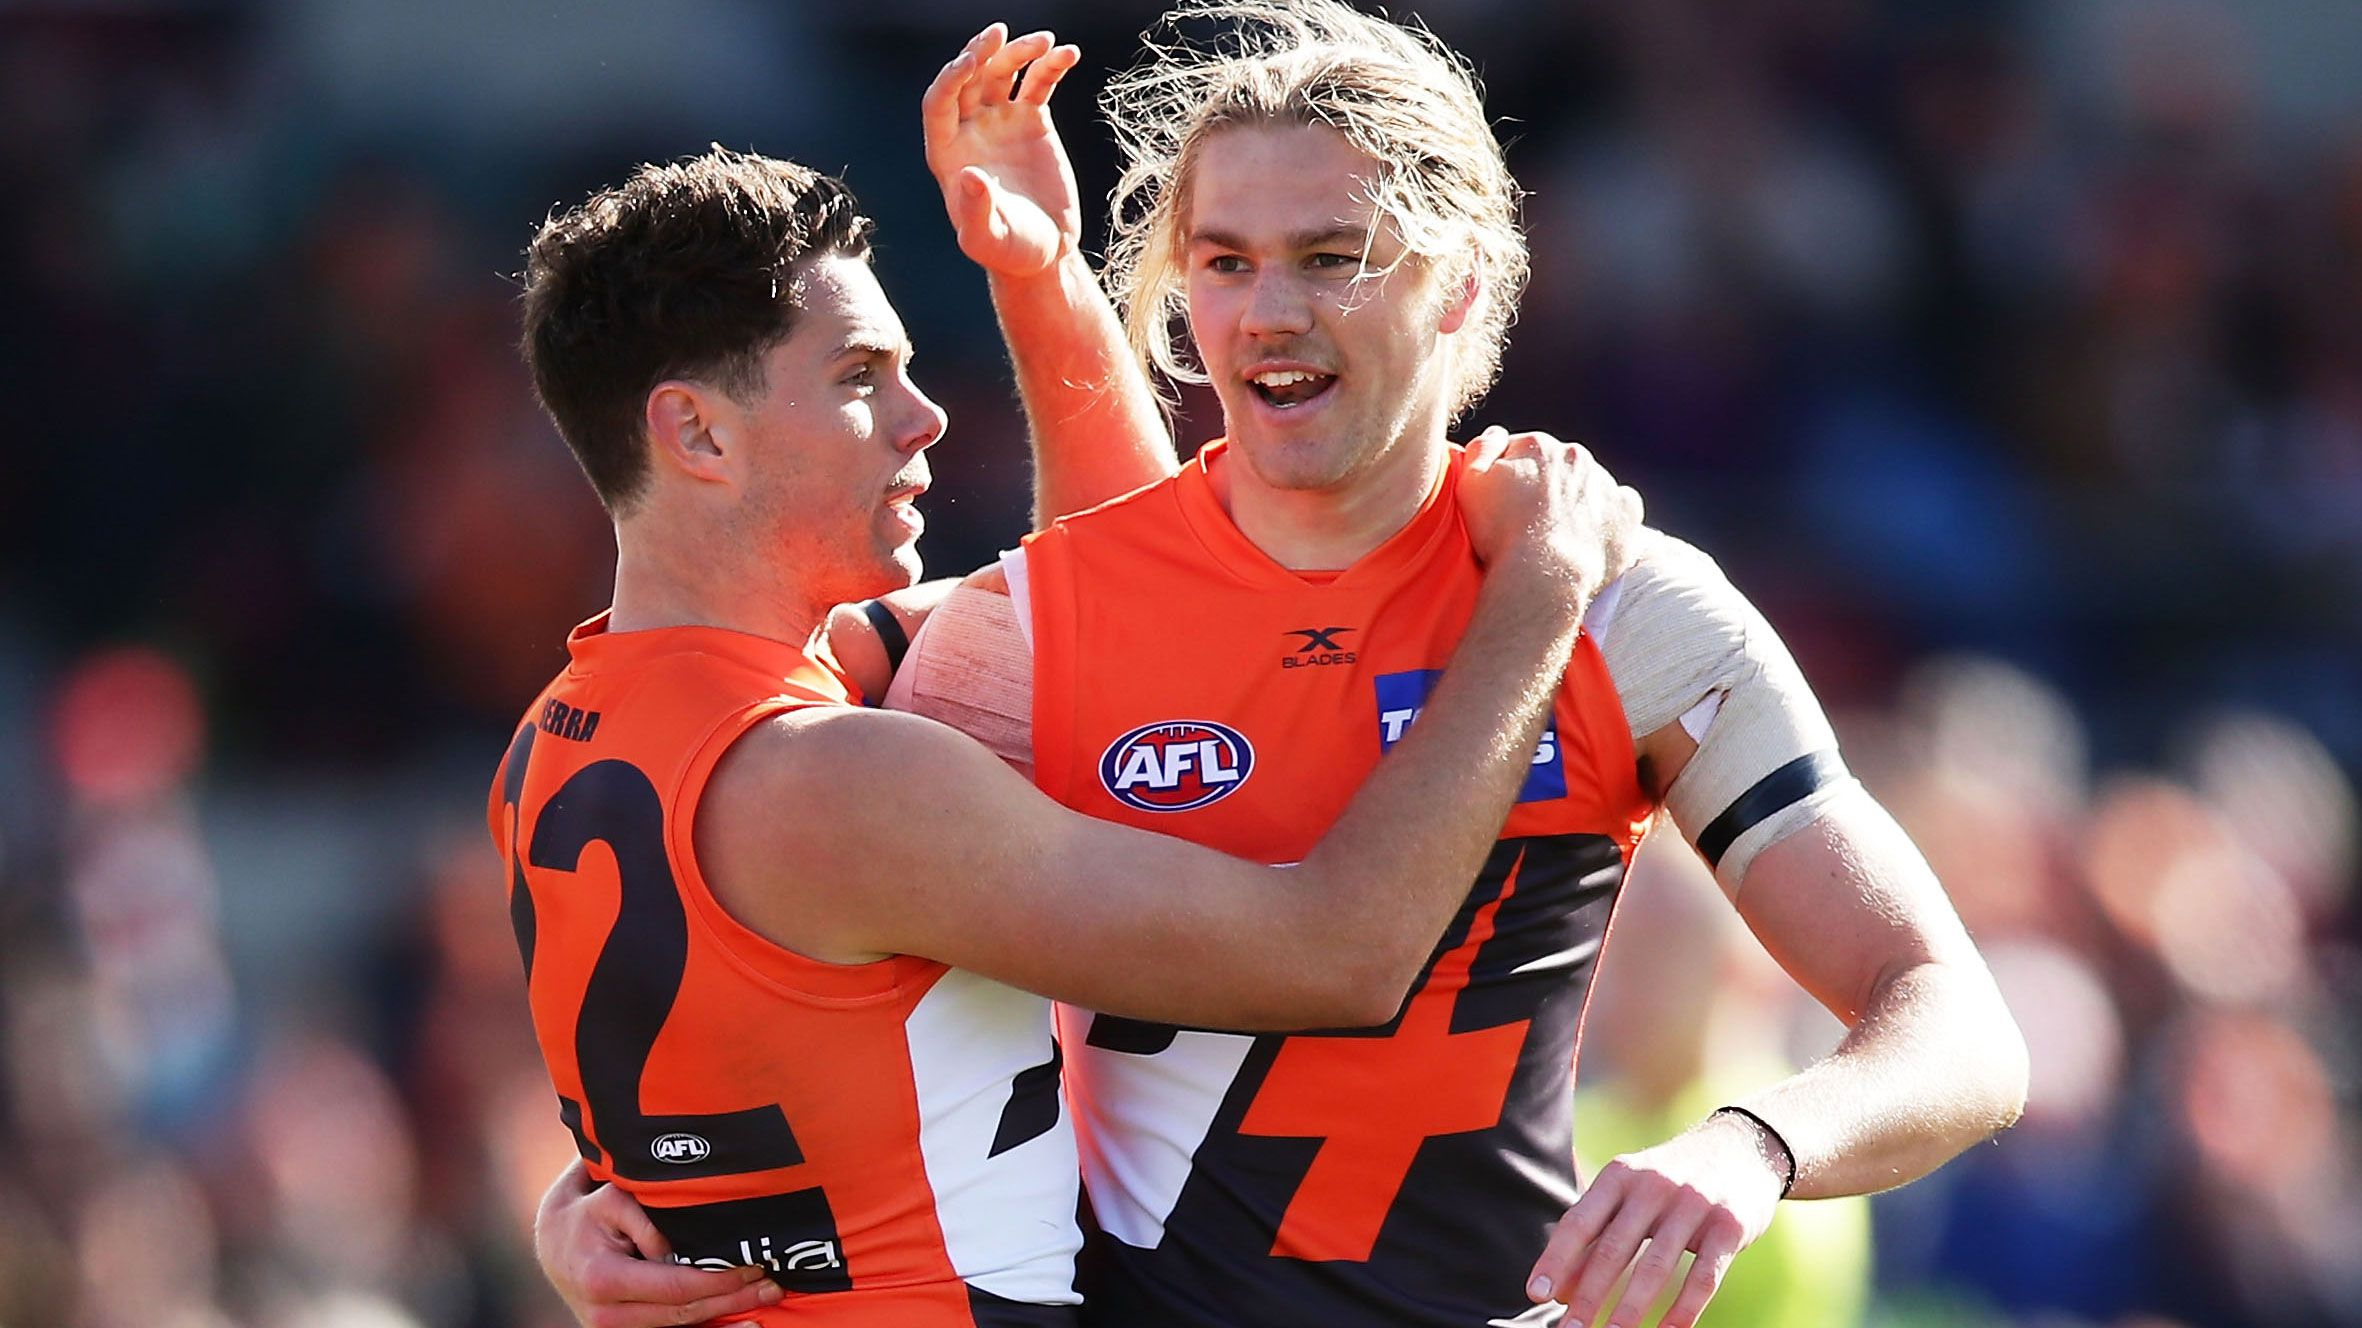 AFL Experts Roundtable Vol 2.0: Why Josh Kelly is poised to take over the league in 2019